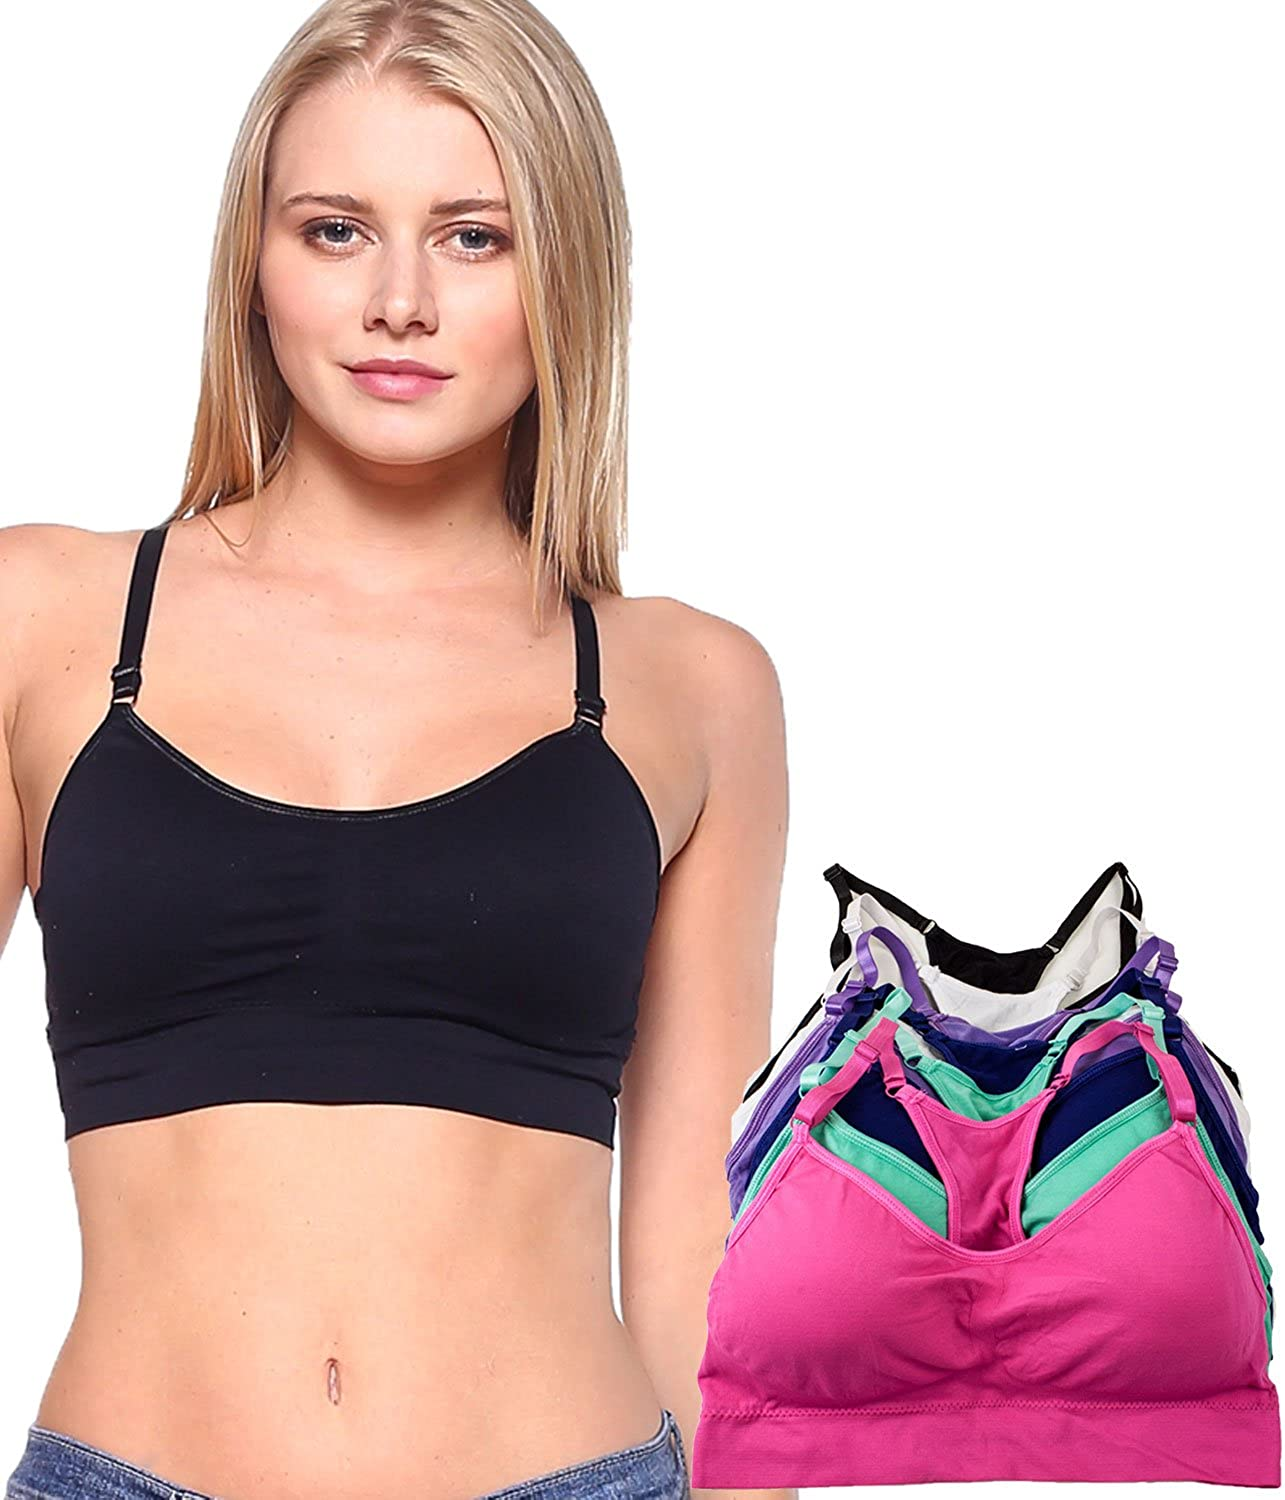 Barbra Lingerie 6 Pack of Regular & Plus Size Wirefree Sleep Yoga Sport Bras with Removable Pads